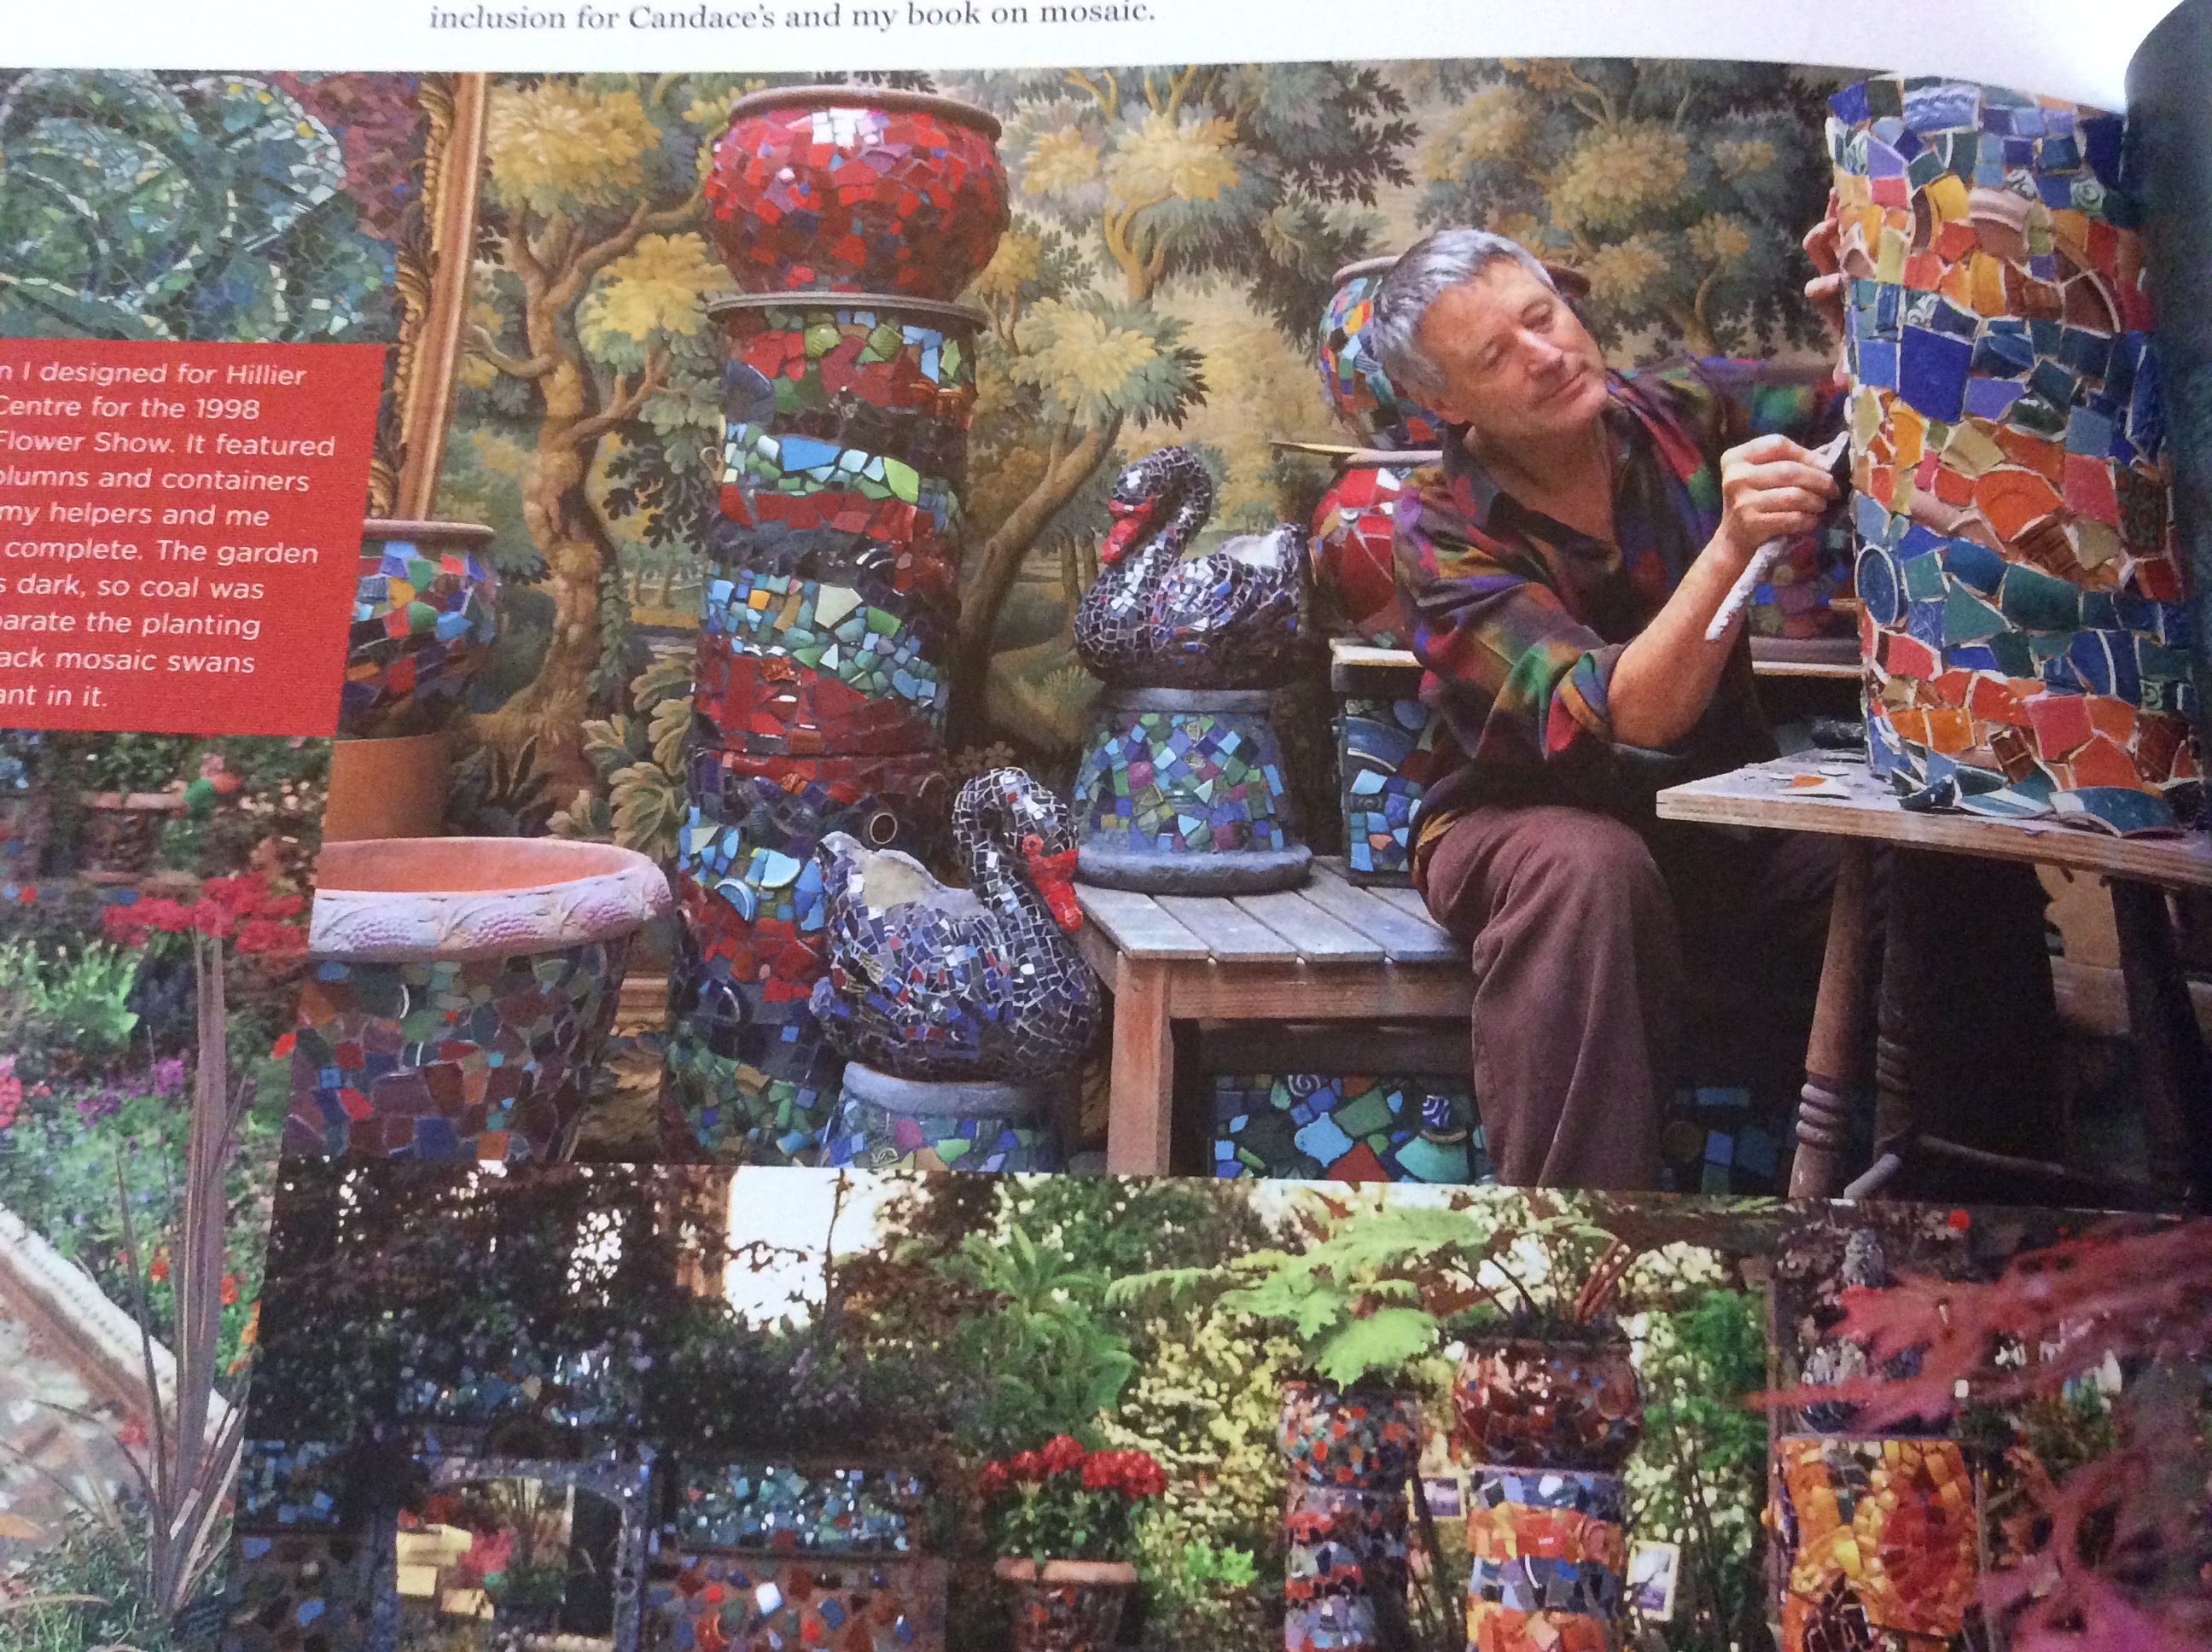 Kaffe Fassett working on mosaics